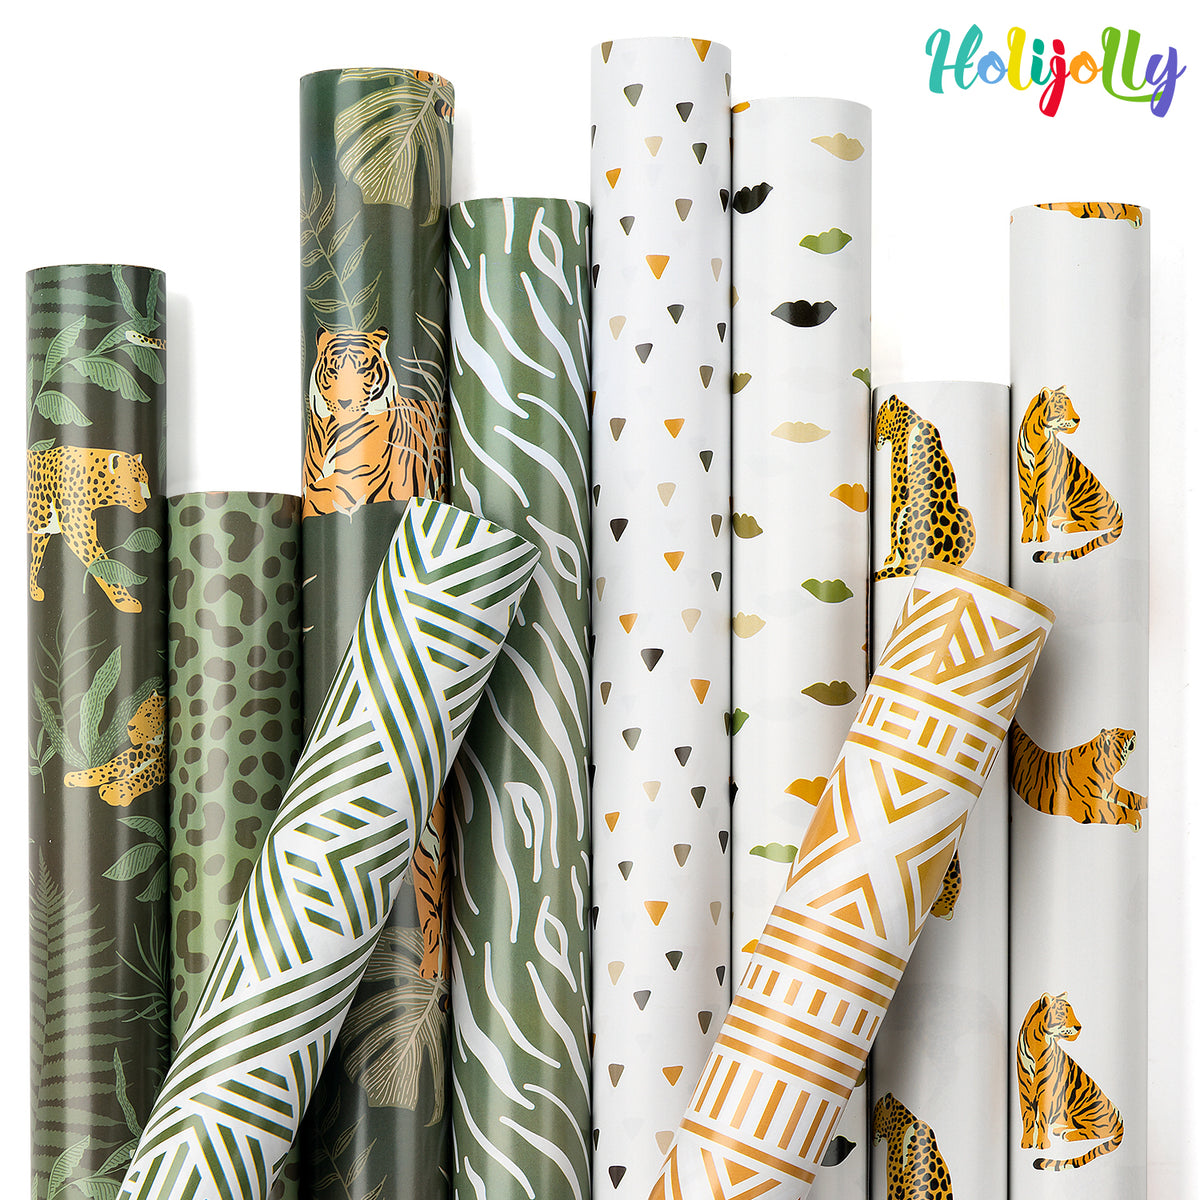 Holijolly-wrapping-paper-sheet-bundle-jungle-design-01